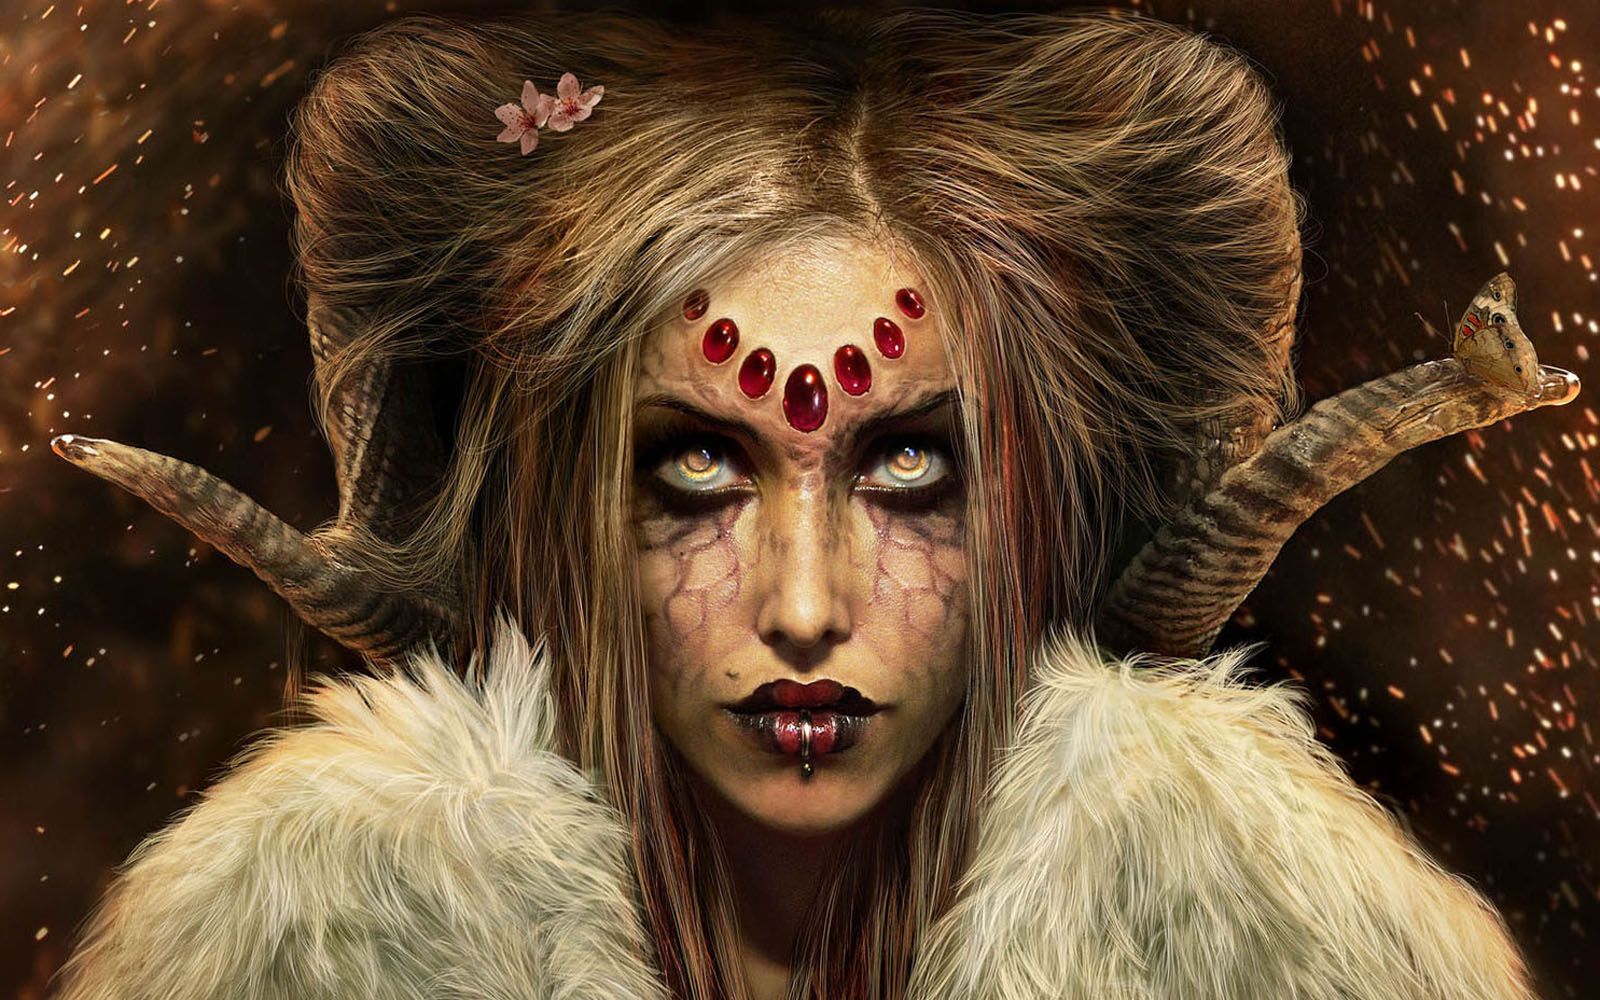 Fantasy women evil - photo#22